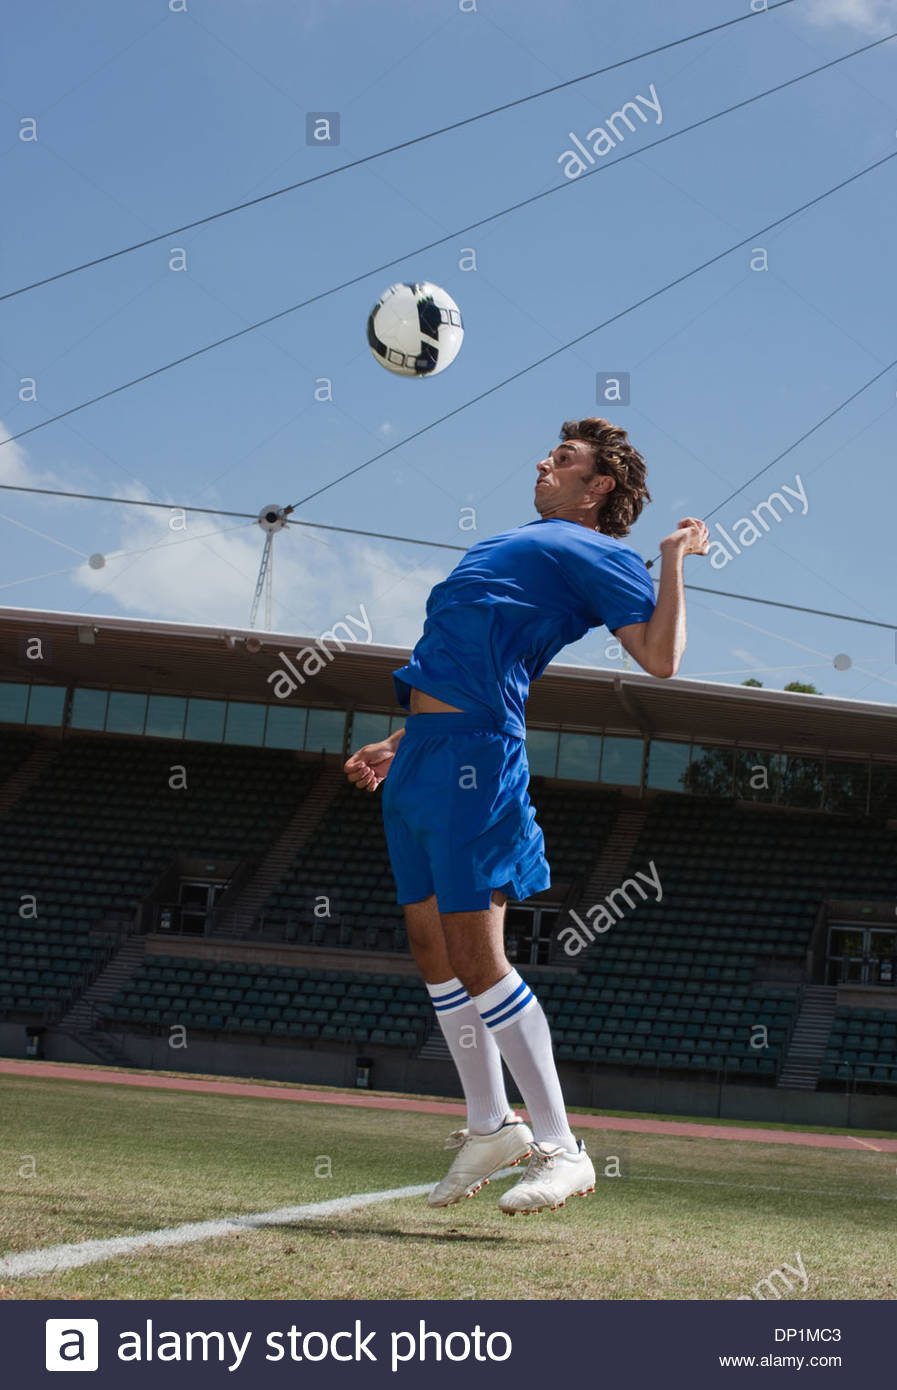 Soccer player playing soccer ball - Stock Image